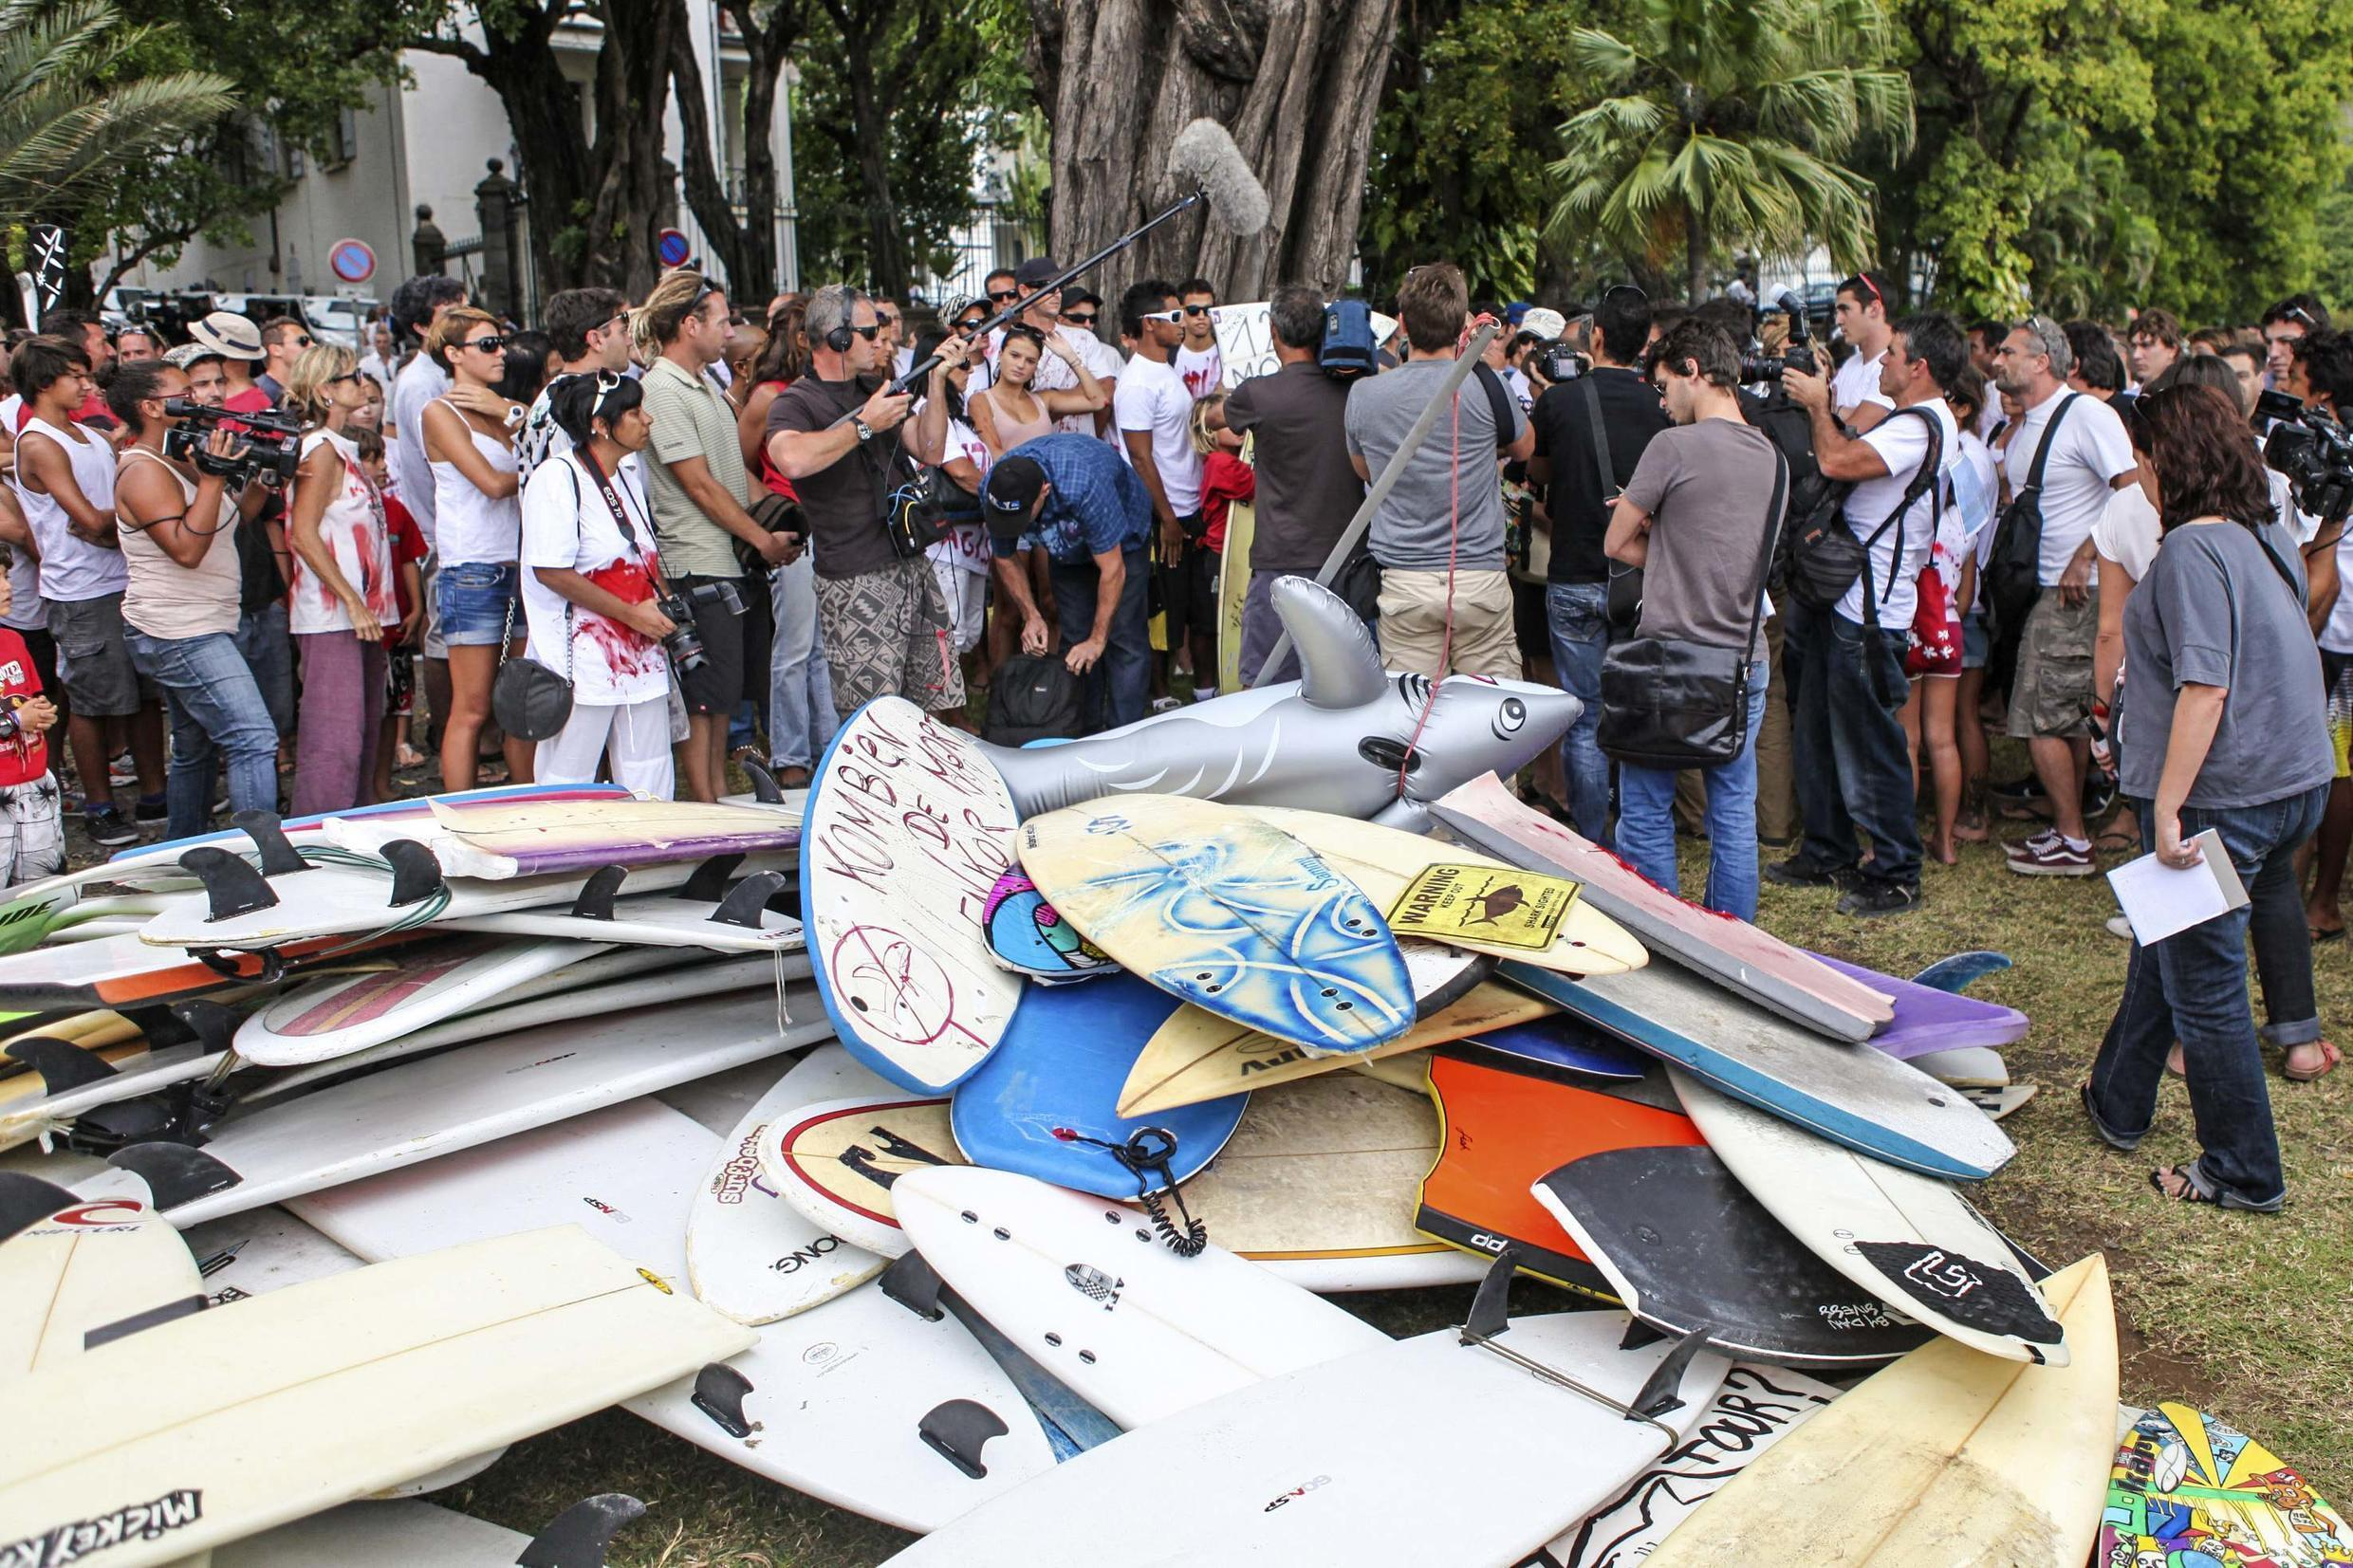 Surfboards are stacked on the ground during demonstration on the Island of La Réunion after Alexandre Rassica died following a shark attack where the animal bit off his leg while surfing